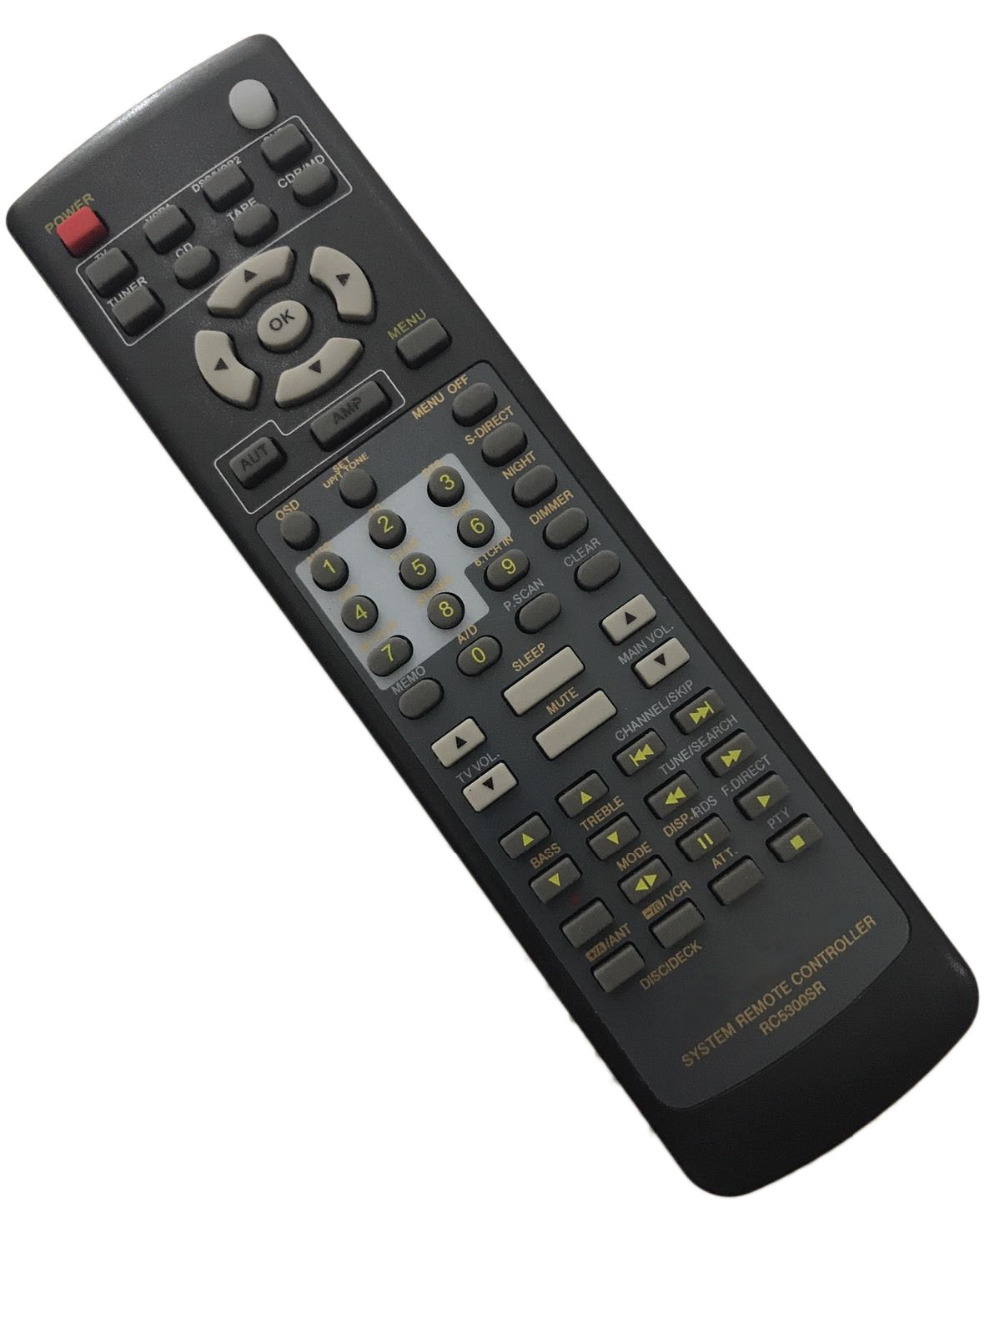 RC5300SR Replacement Remote Control for Marantz SR4200 SR4300 SR4400 SR4600  SR5200 SR5300 AV Receiver-in Remote Controls from Consumer Electronics on  ...